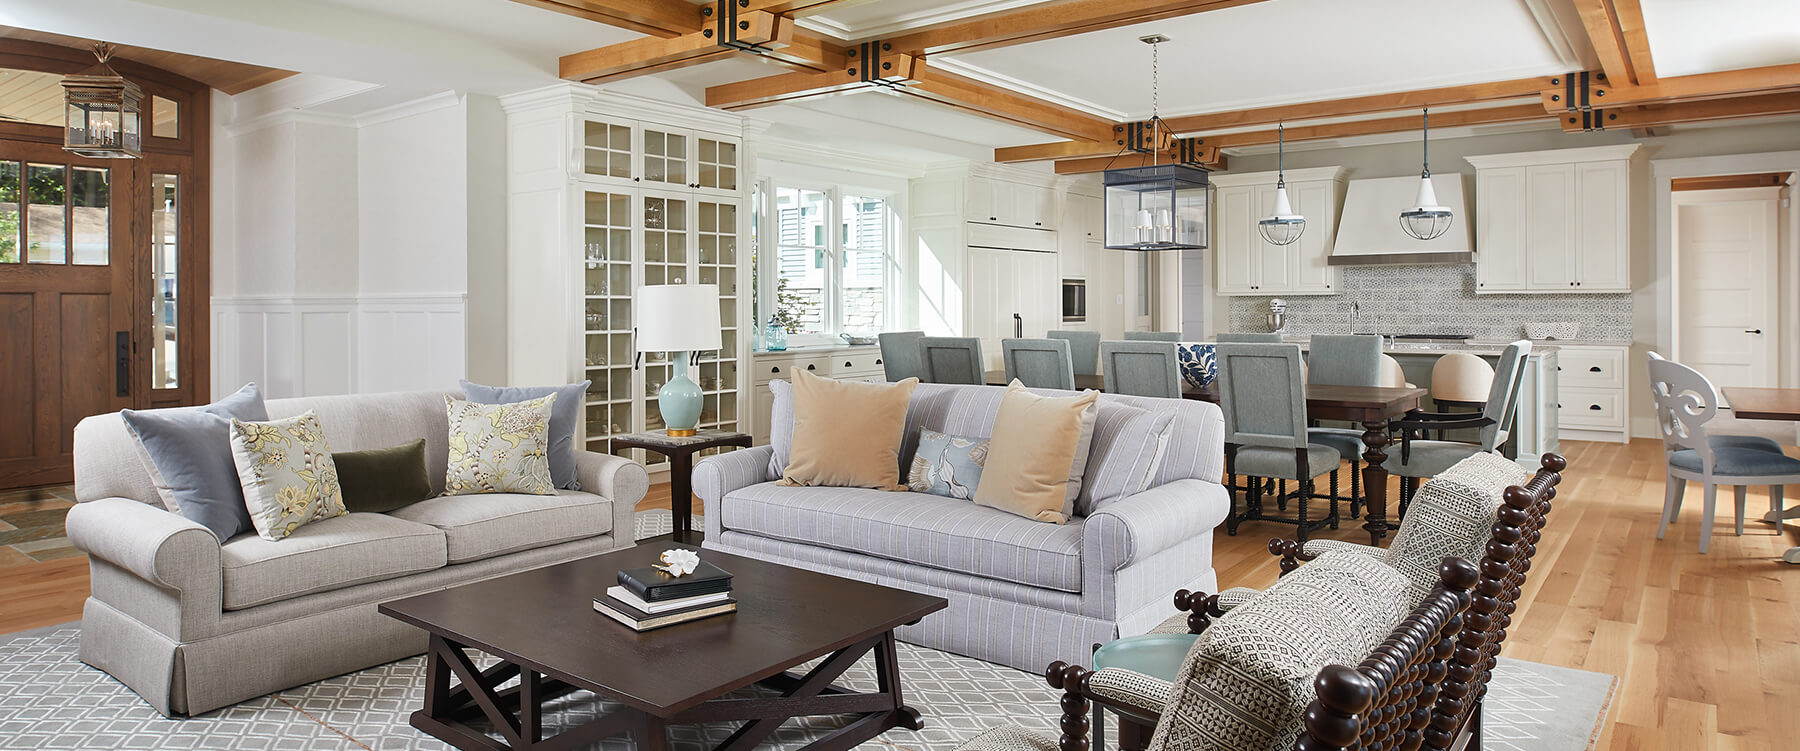 Lakefront cottage living space